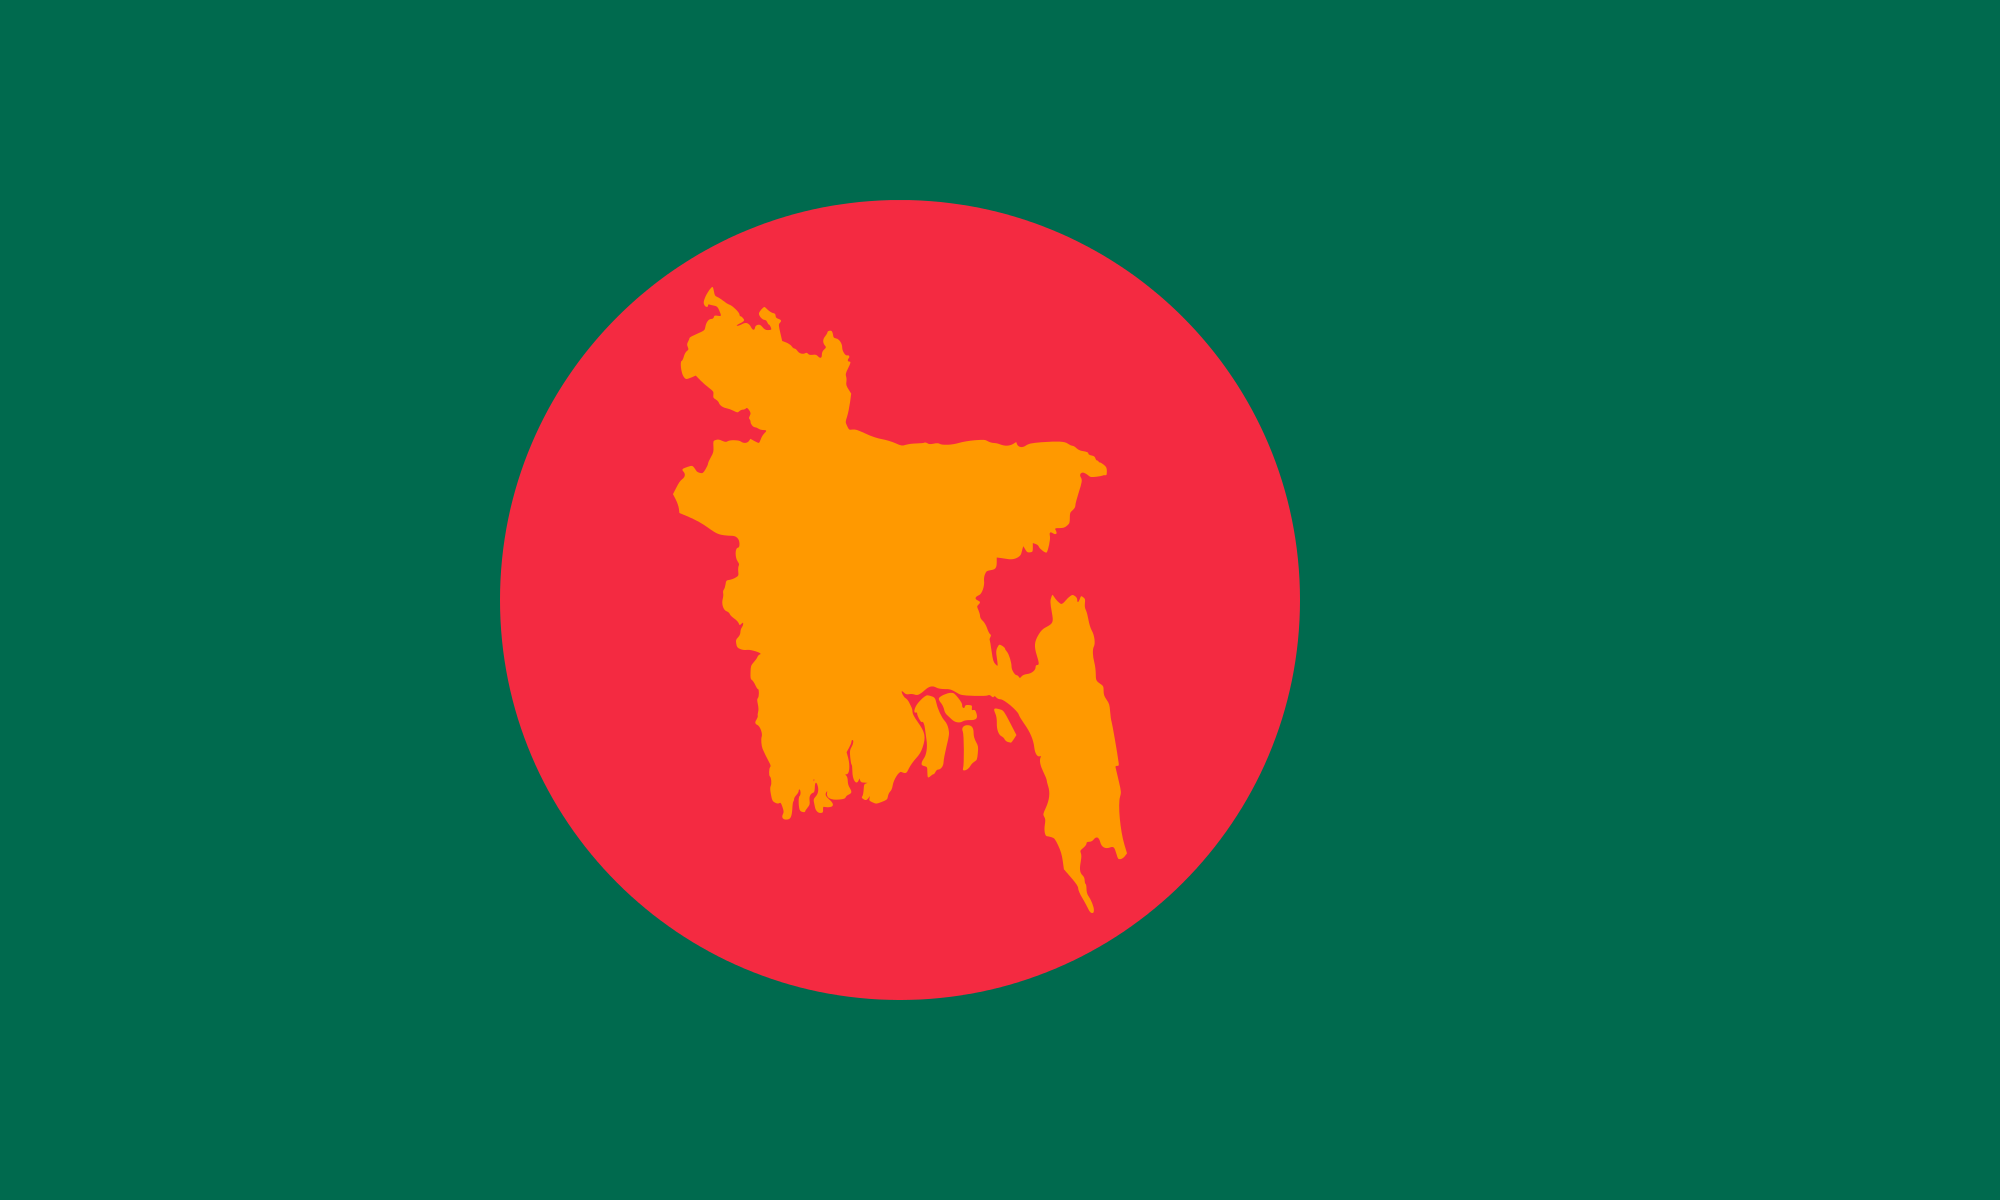 Bangladesh Flag Happy Bangladesh Independence Day Greetings